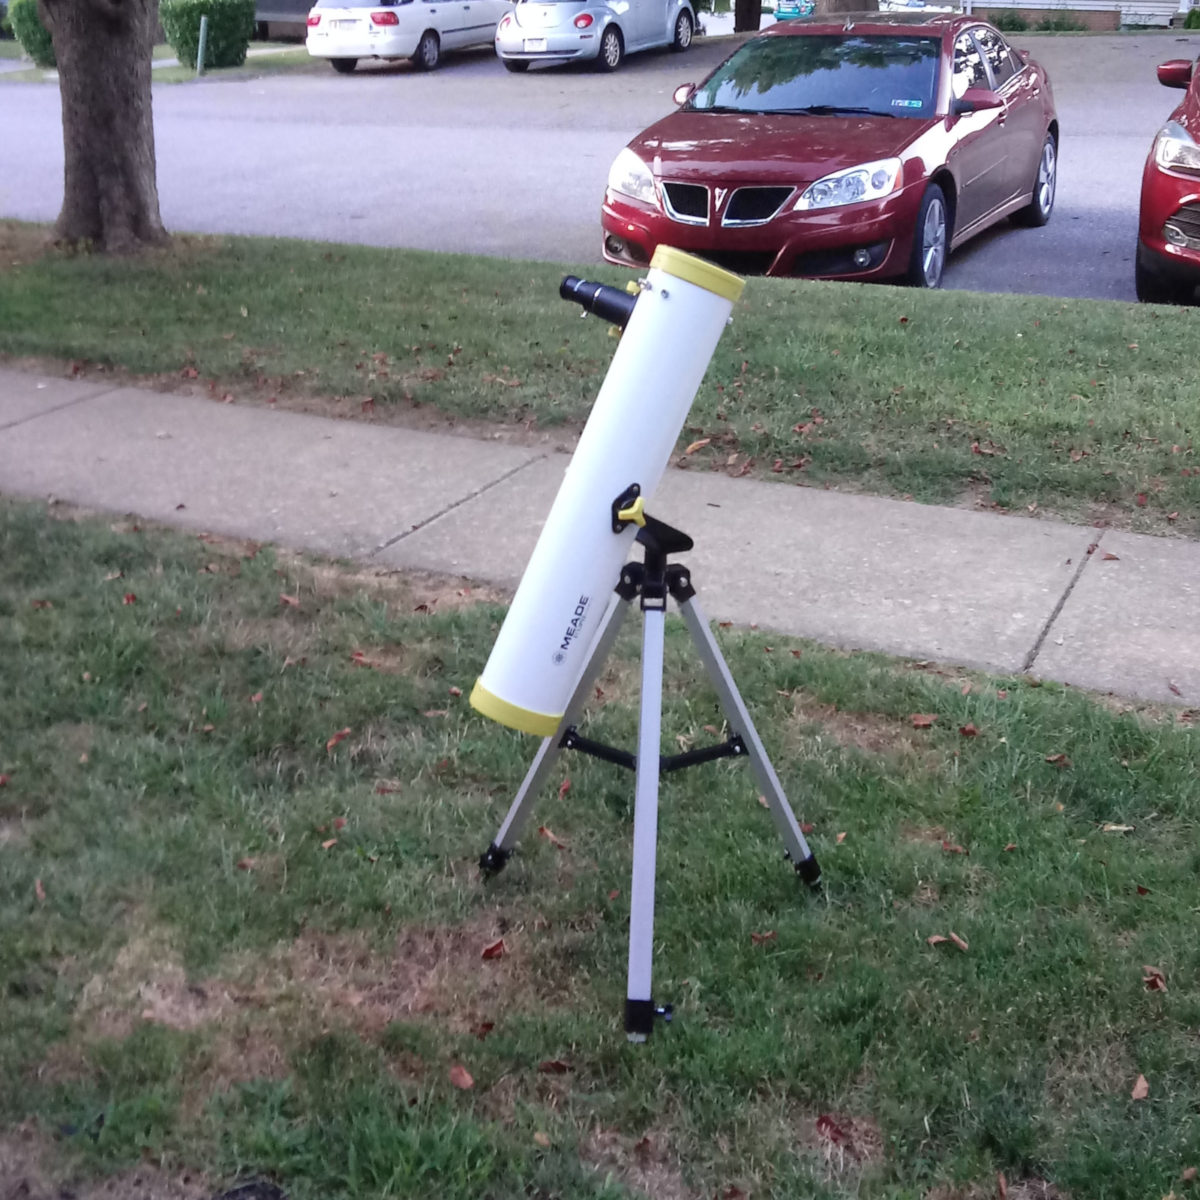 My Meade reflecting telescope, ready for stellar observations